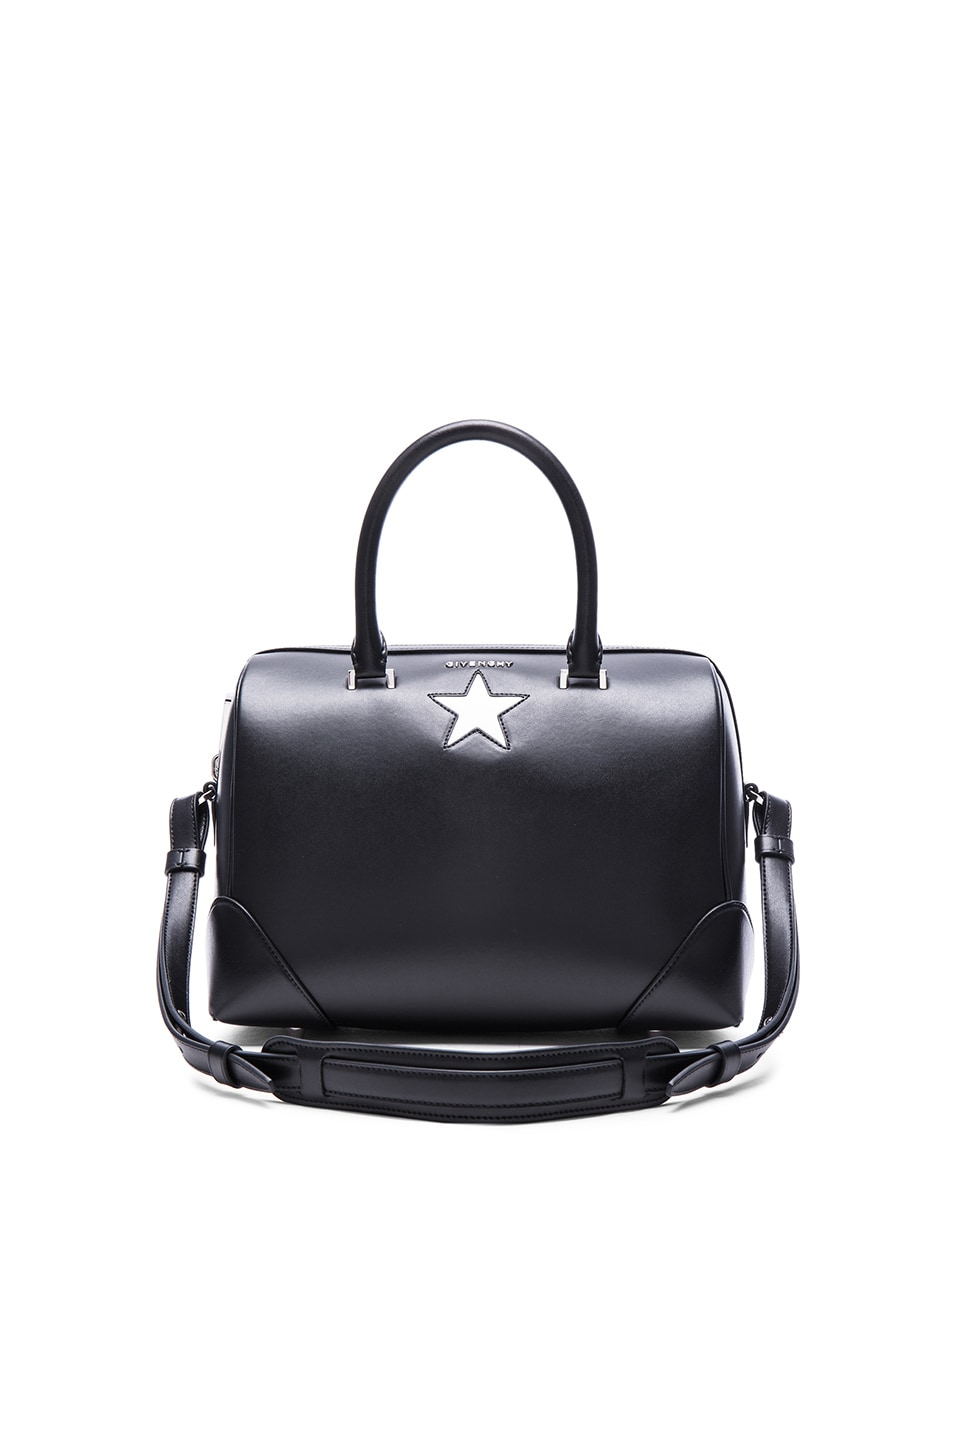 4f5b3070f73d Image 1 of Givenchy Medium Lucrezia With Star in Black   White